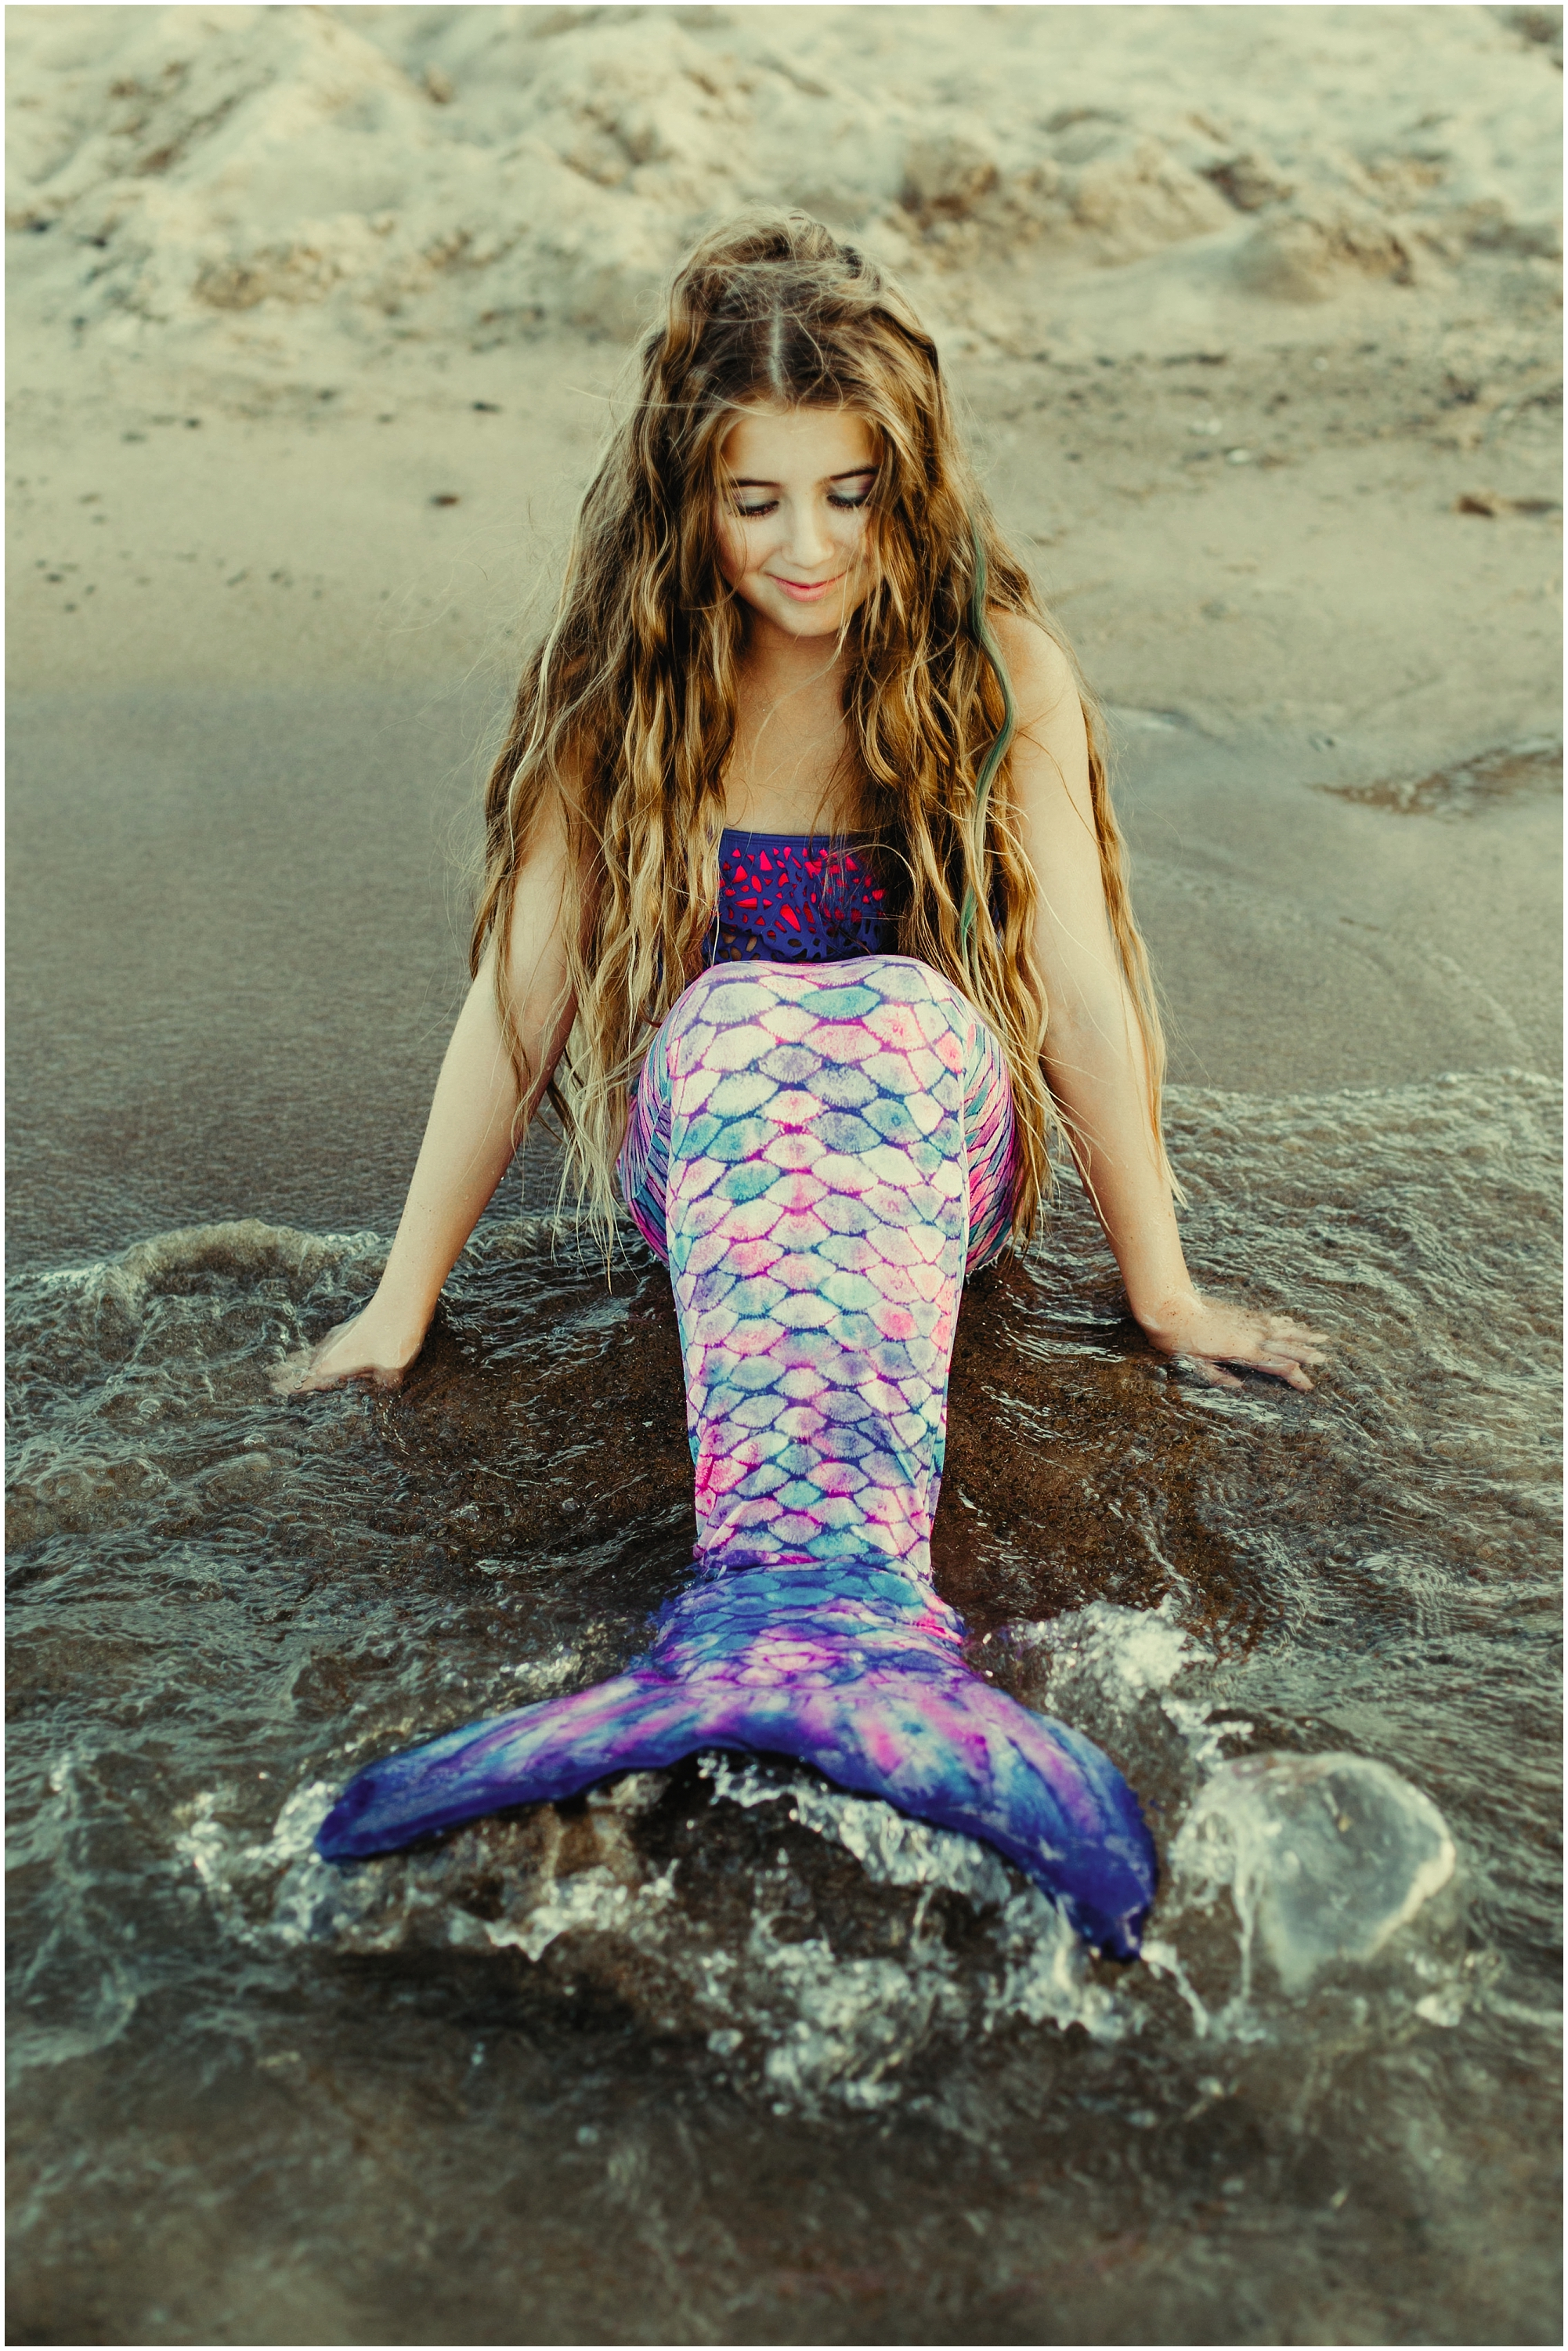 Mermaid Hair Don't Care -